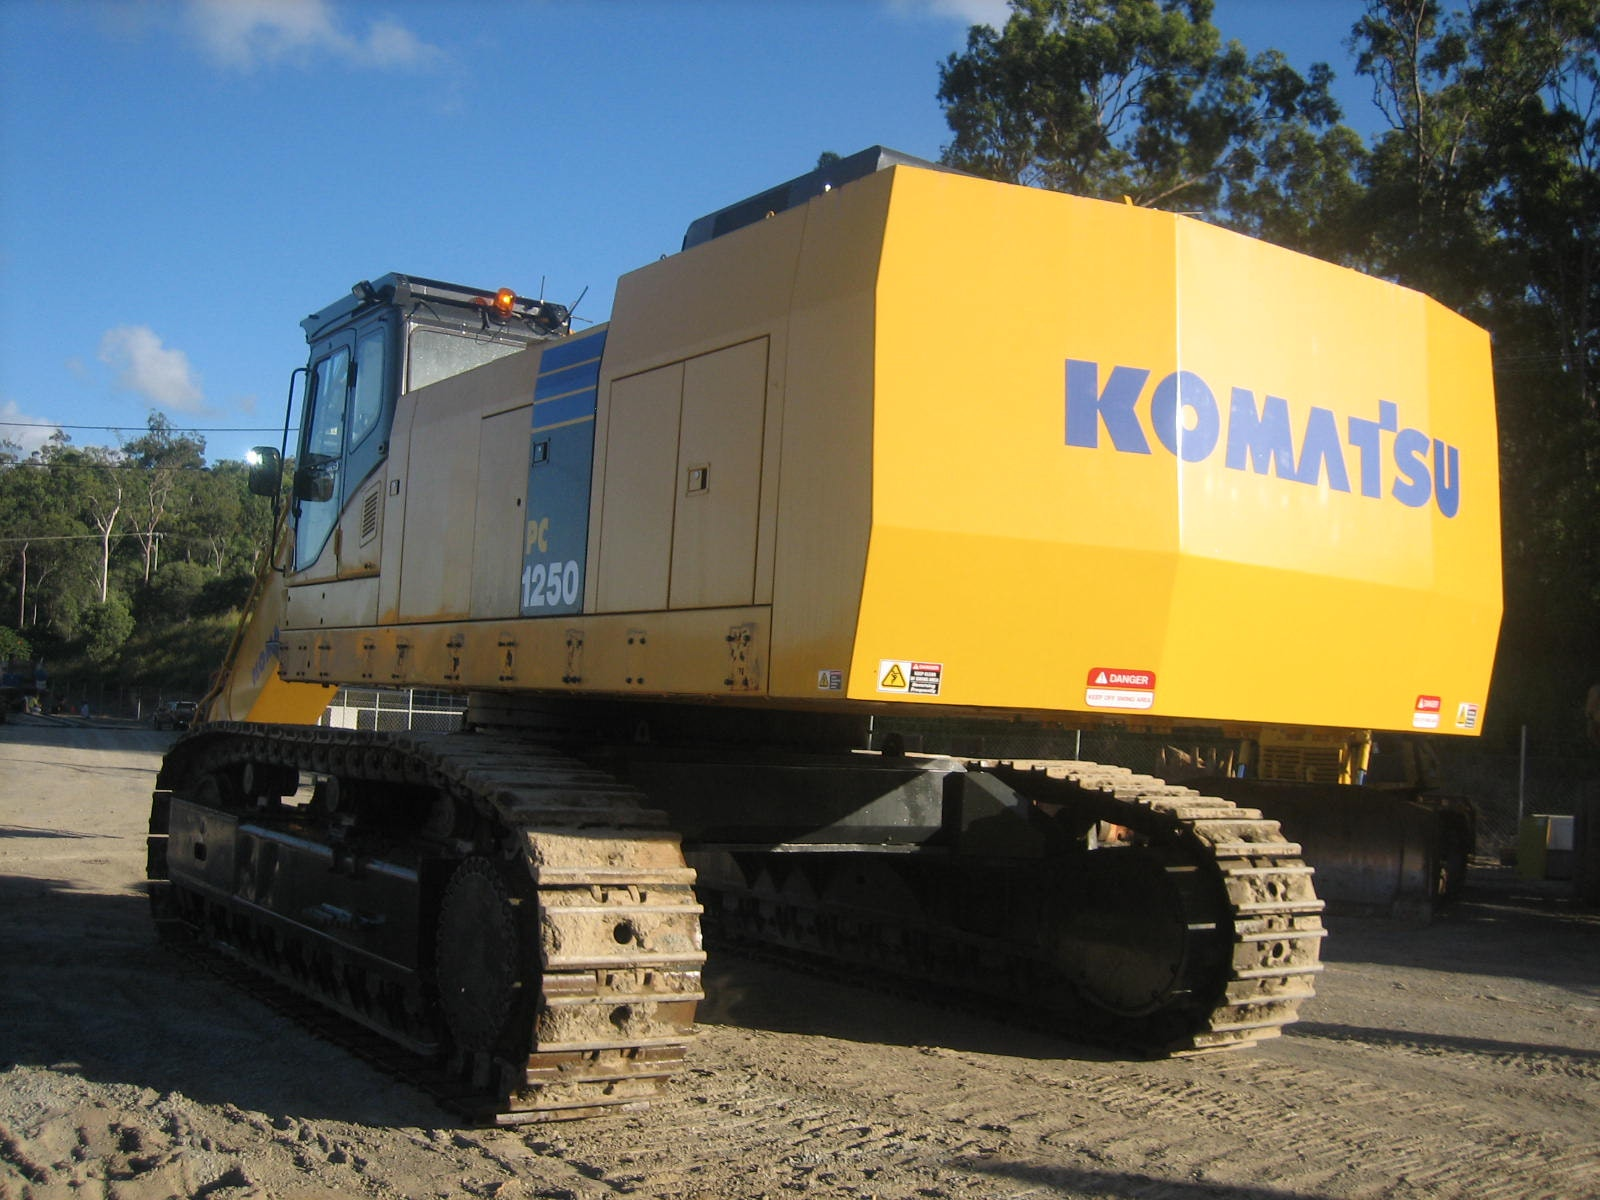 101t - 200t Excavator for hire - Thomas Kingsley Resources Pty Ltd